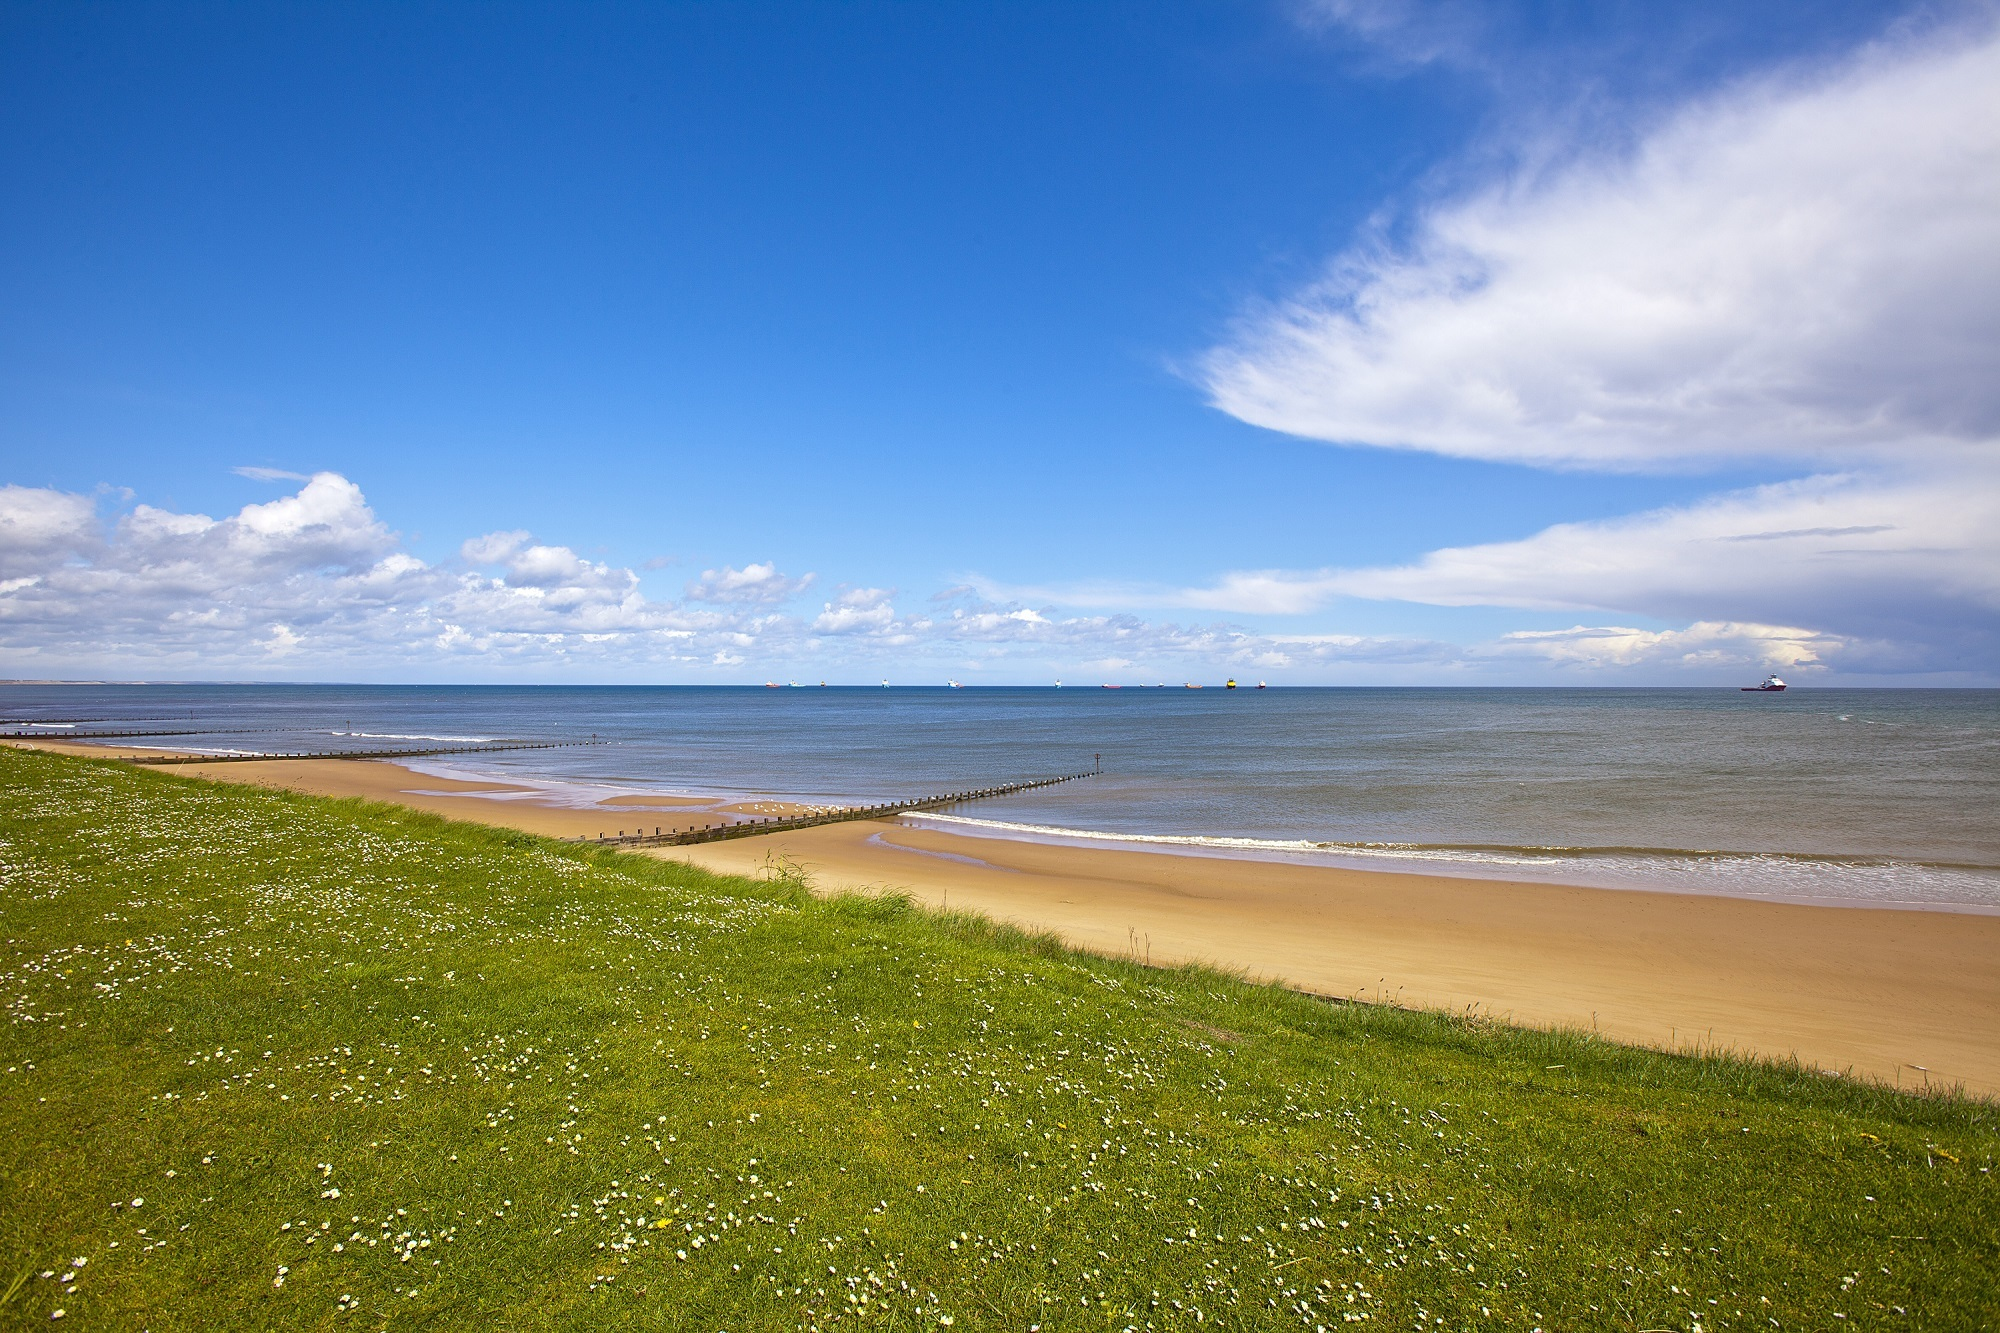 Aberdeen-Beach-ONLY-TO-BE-USED-AS-SPECIFIED-BY-VISITABERDEEN-low-res.jpg#asset:1041